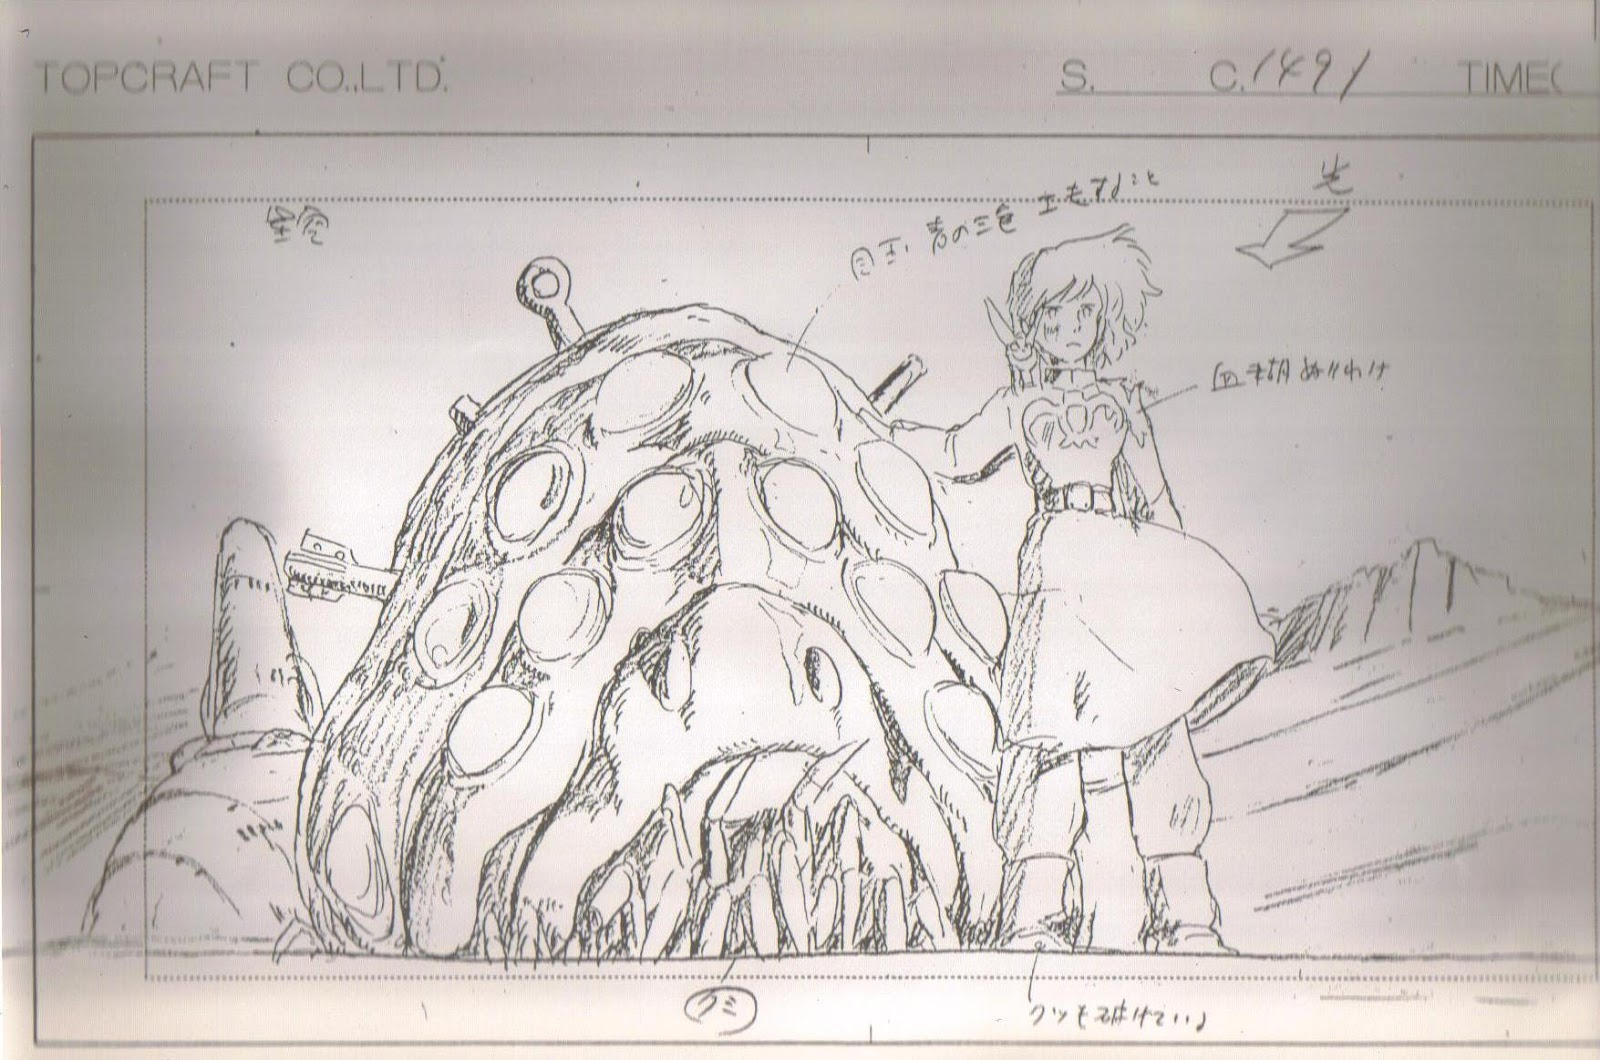 nausicaa_of_the_valley_of_the_wind_concept_art_storyboard_17.jpg